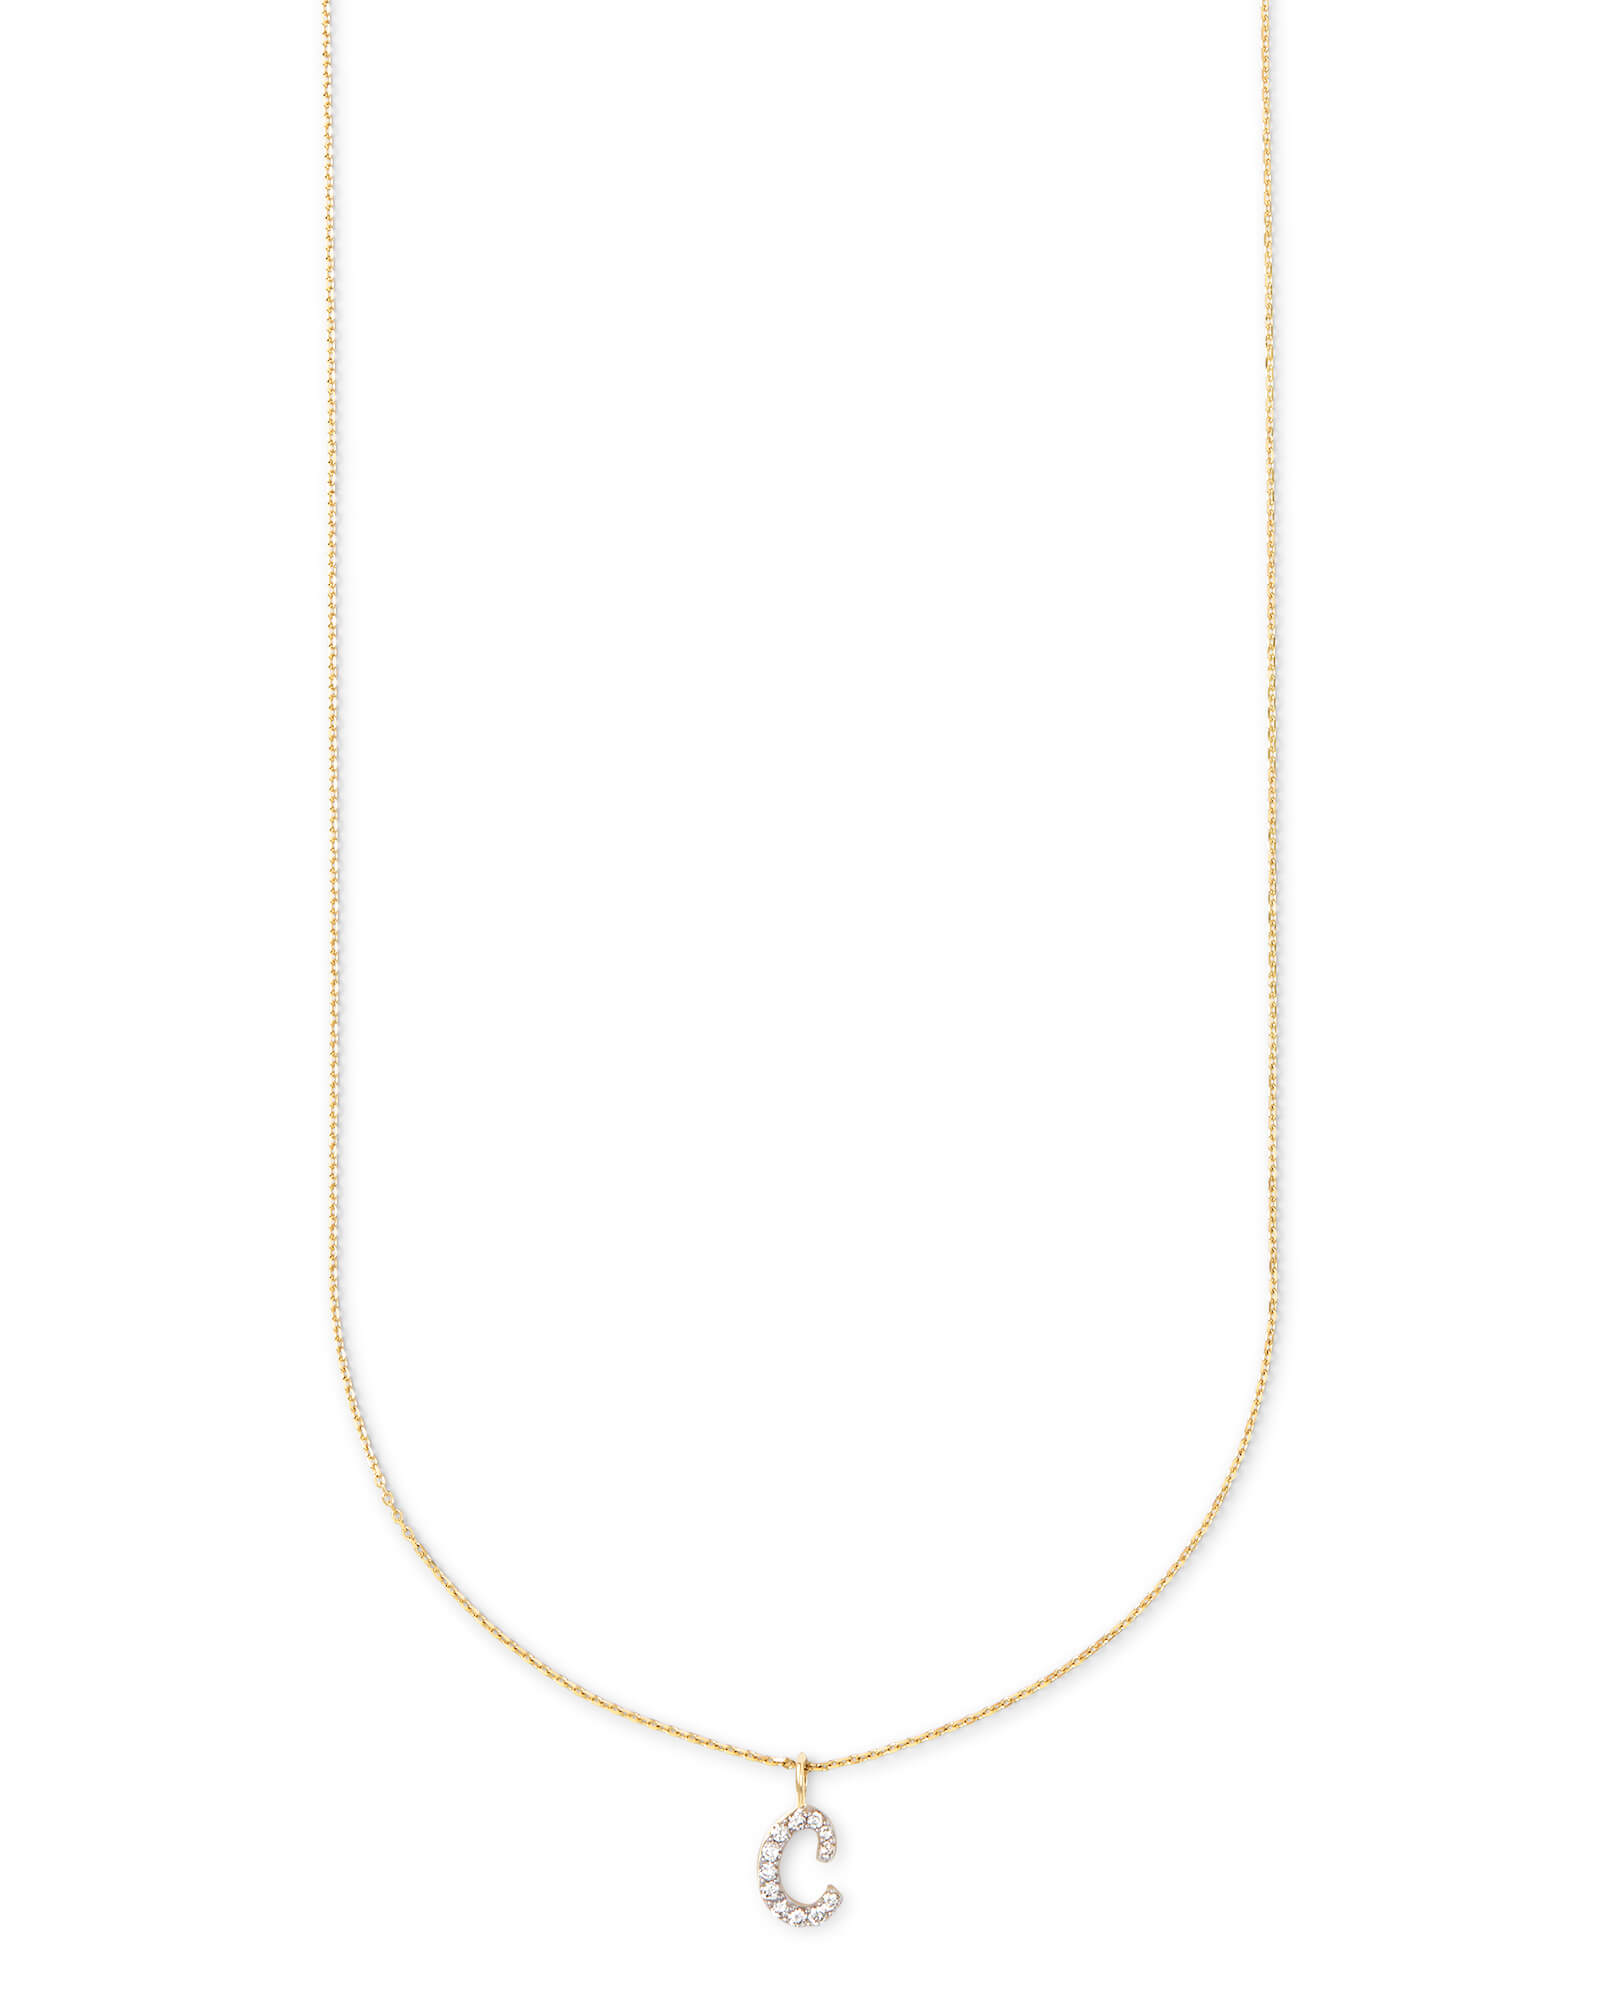 Diamond Letter C Pendant Necklace in 14K Yellow Gold